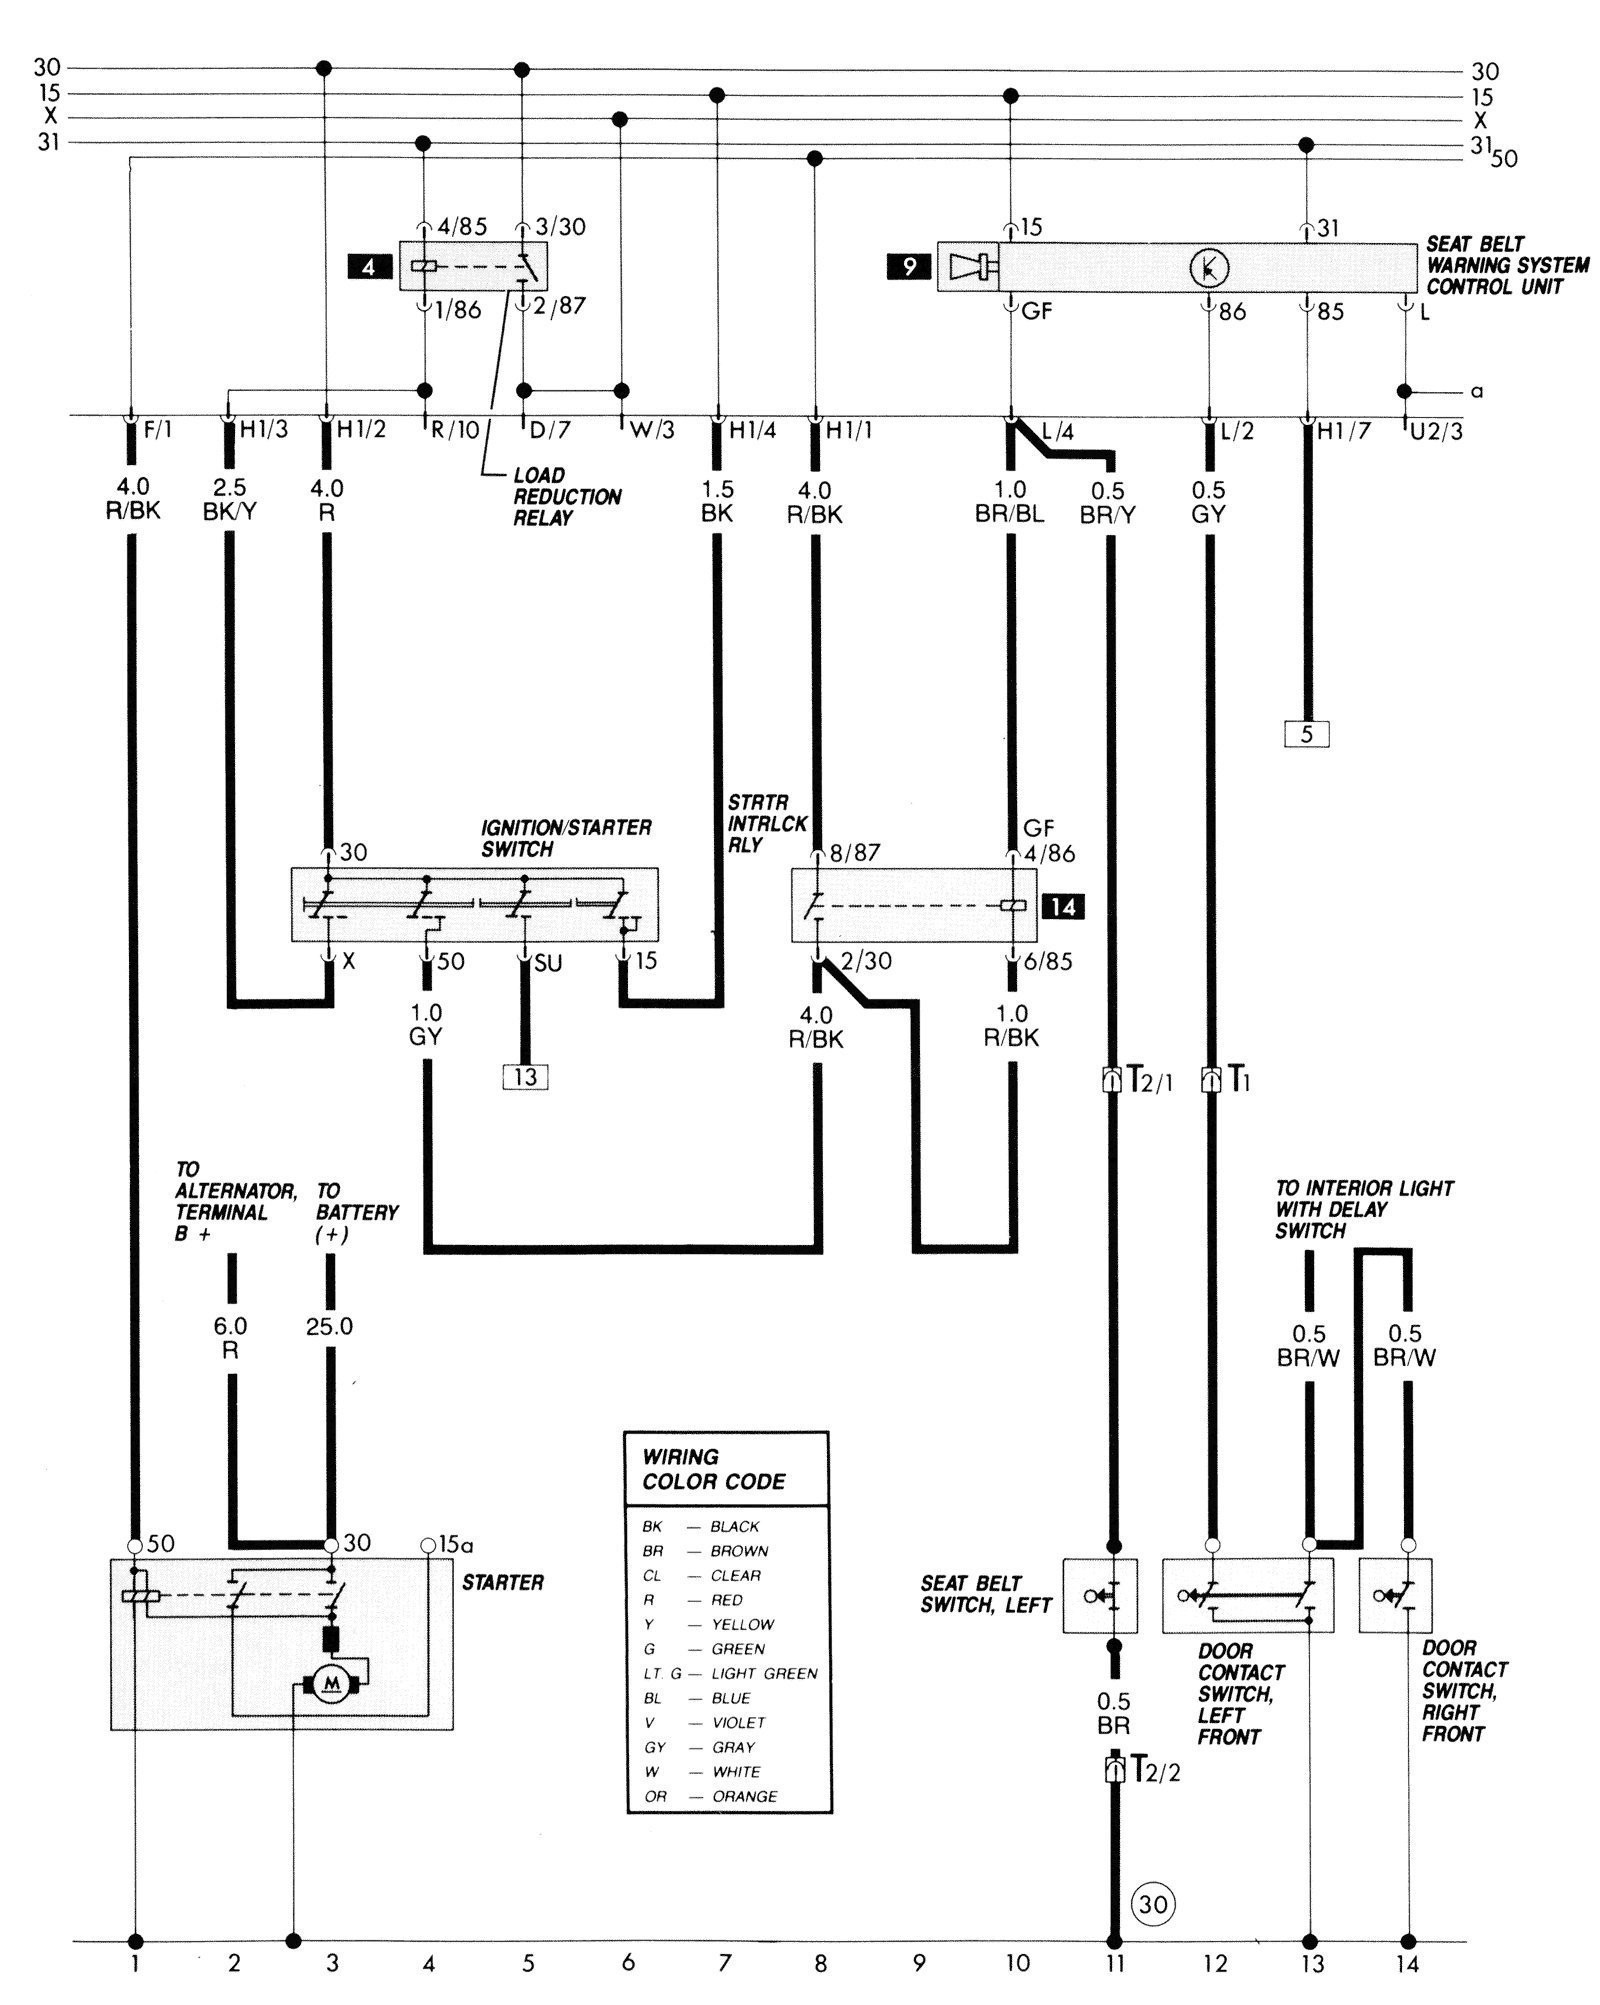 97 pat tdi wiring diagram wiring diagram b7tdi wiring schematics data wiring diagram 2006 tdi wiring diagram wiring diagram experts 2006 tdi wiring